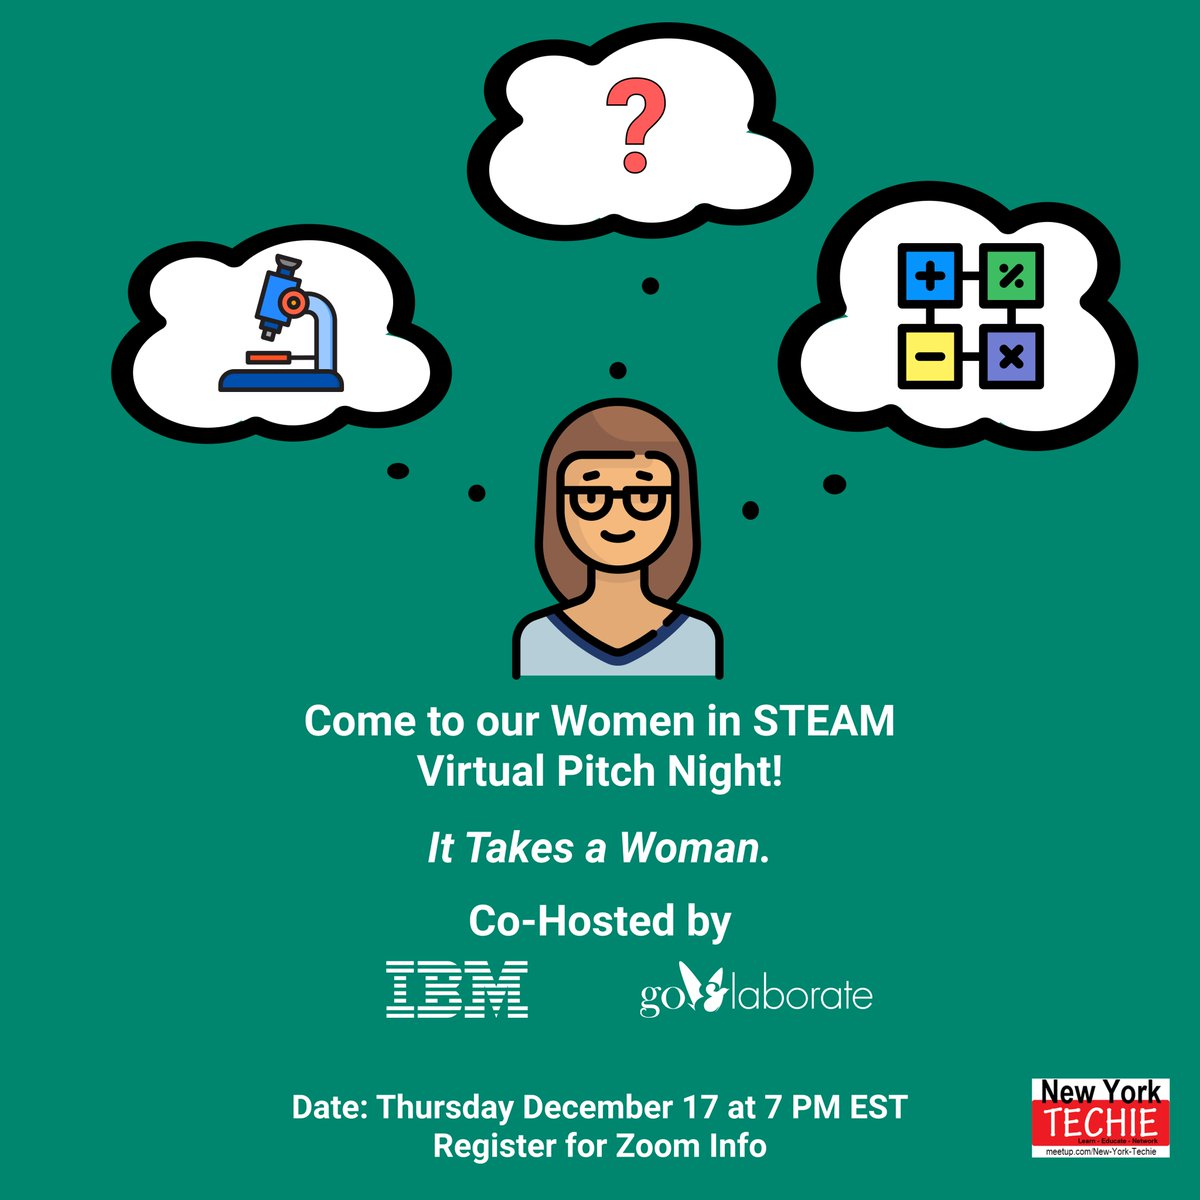 Register for our Women in STEAM Virtual Pitch Night! Join us at 7 PM EST on Thursday, December 17.     #Startup #Ideas #PitchNight #StartupLife #startups #DigitalMarketing #goElaborate